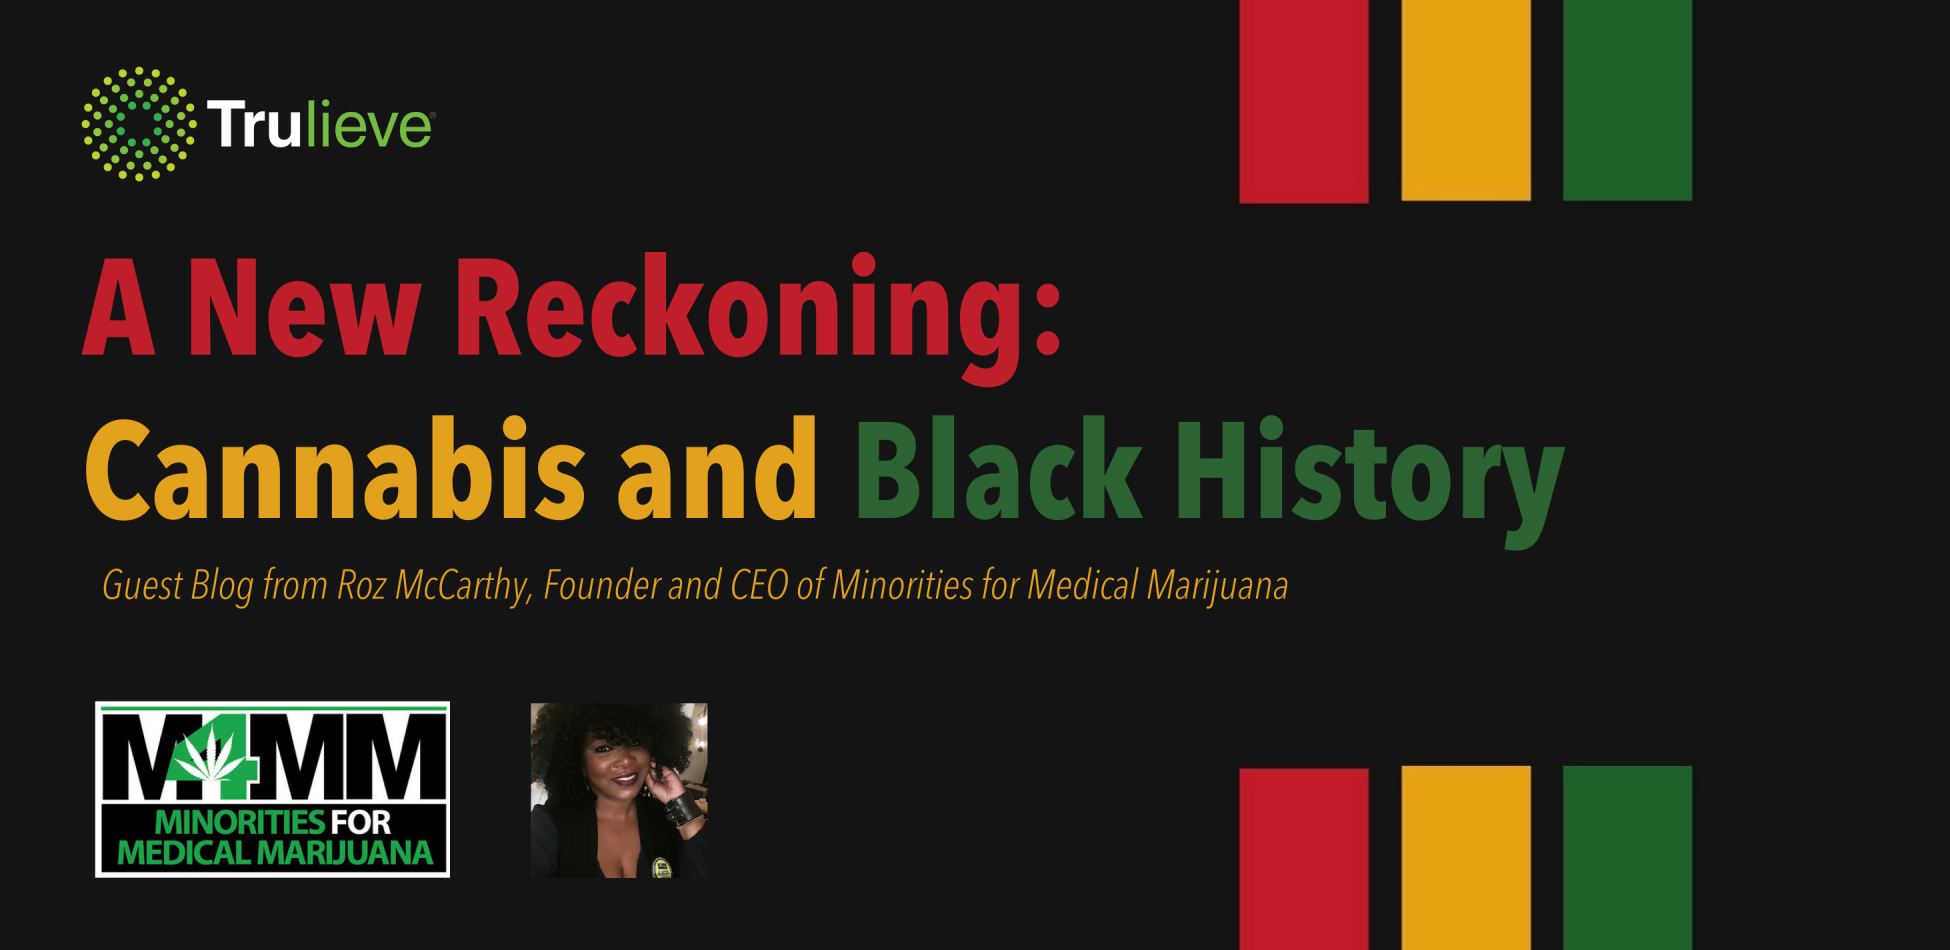 A New Reckoning: Cannabis and Black History. Guest Blog from Roz McCarthy, Founder and CEO of Minorities for Medical Marijuana